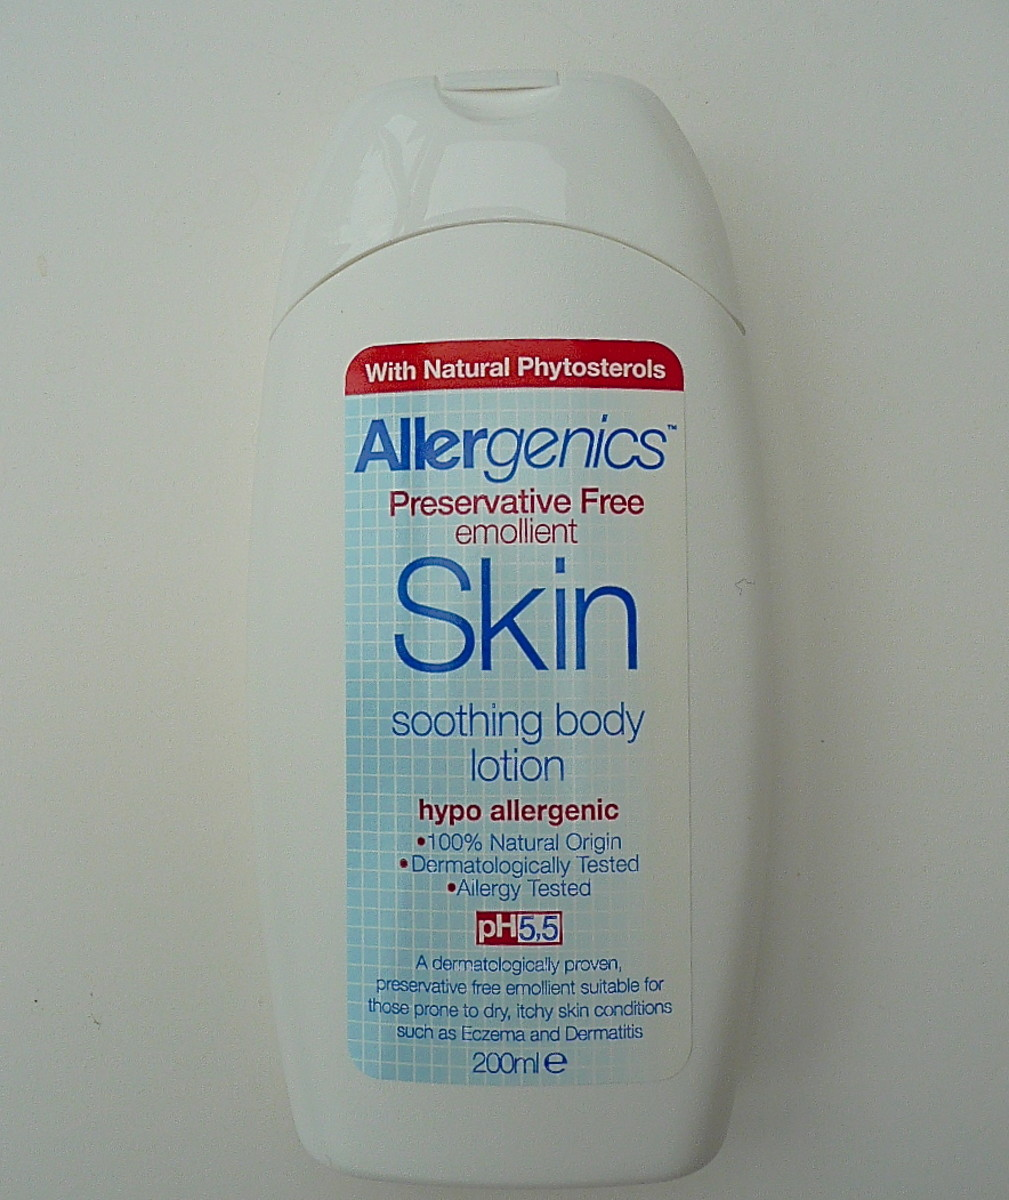 Allergenics soothing body lotion